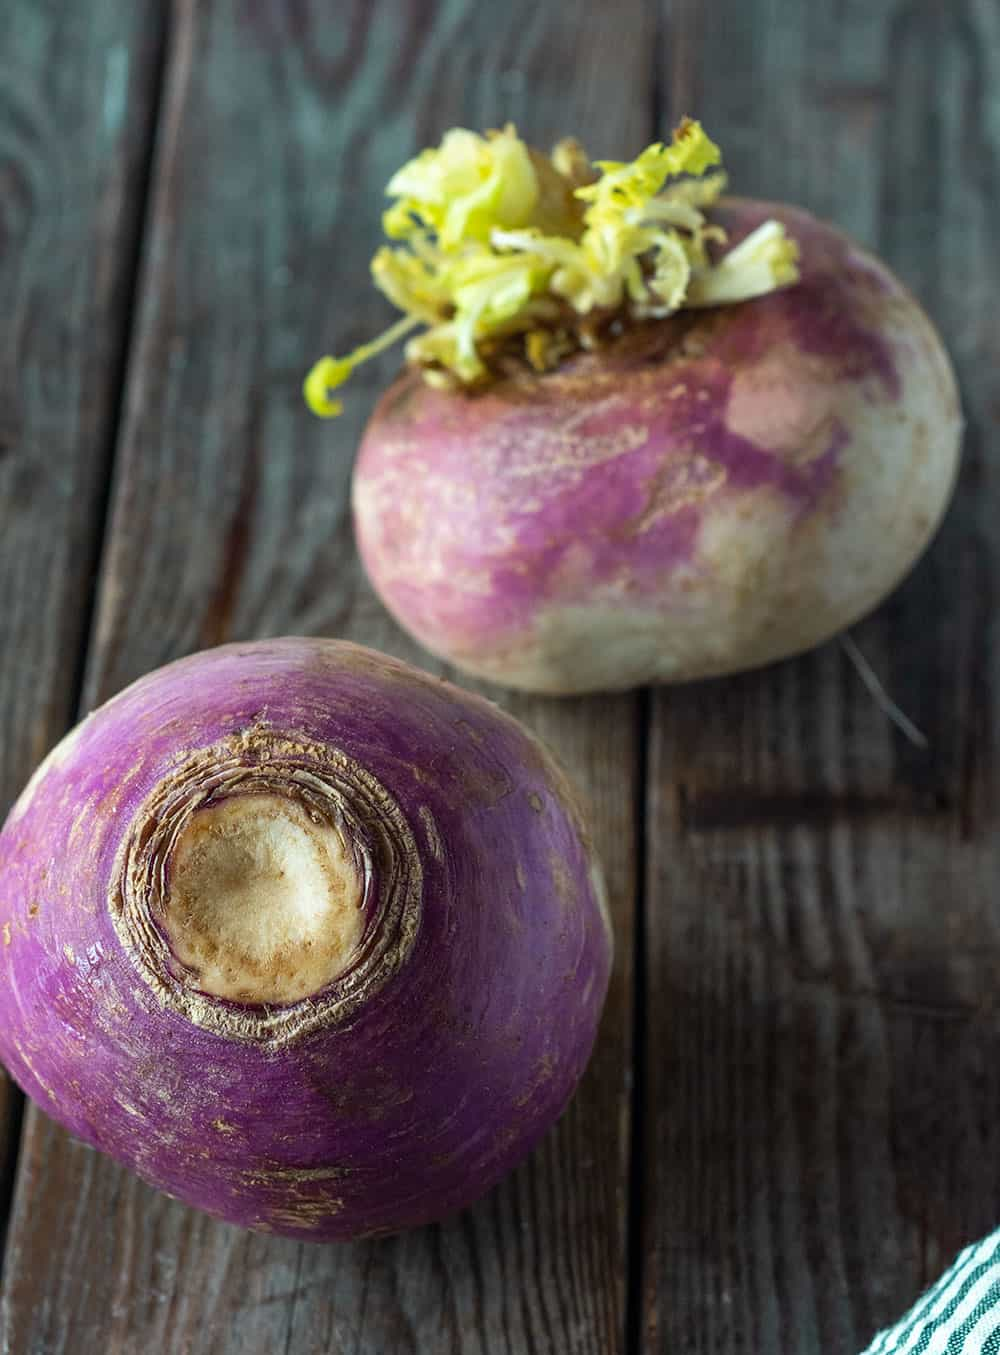 2 turnips with purple and white skin to make turnip fries